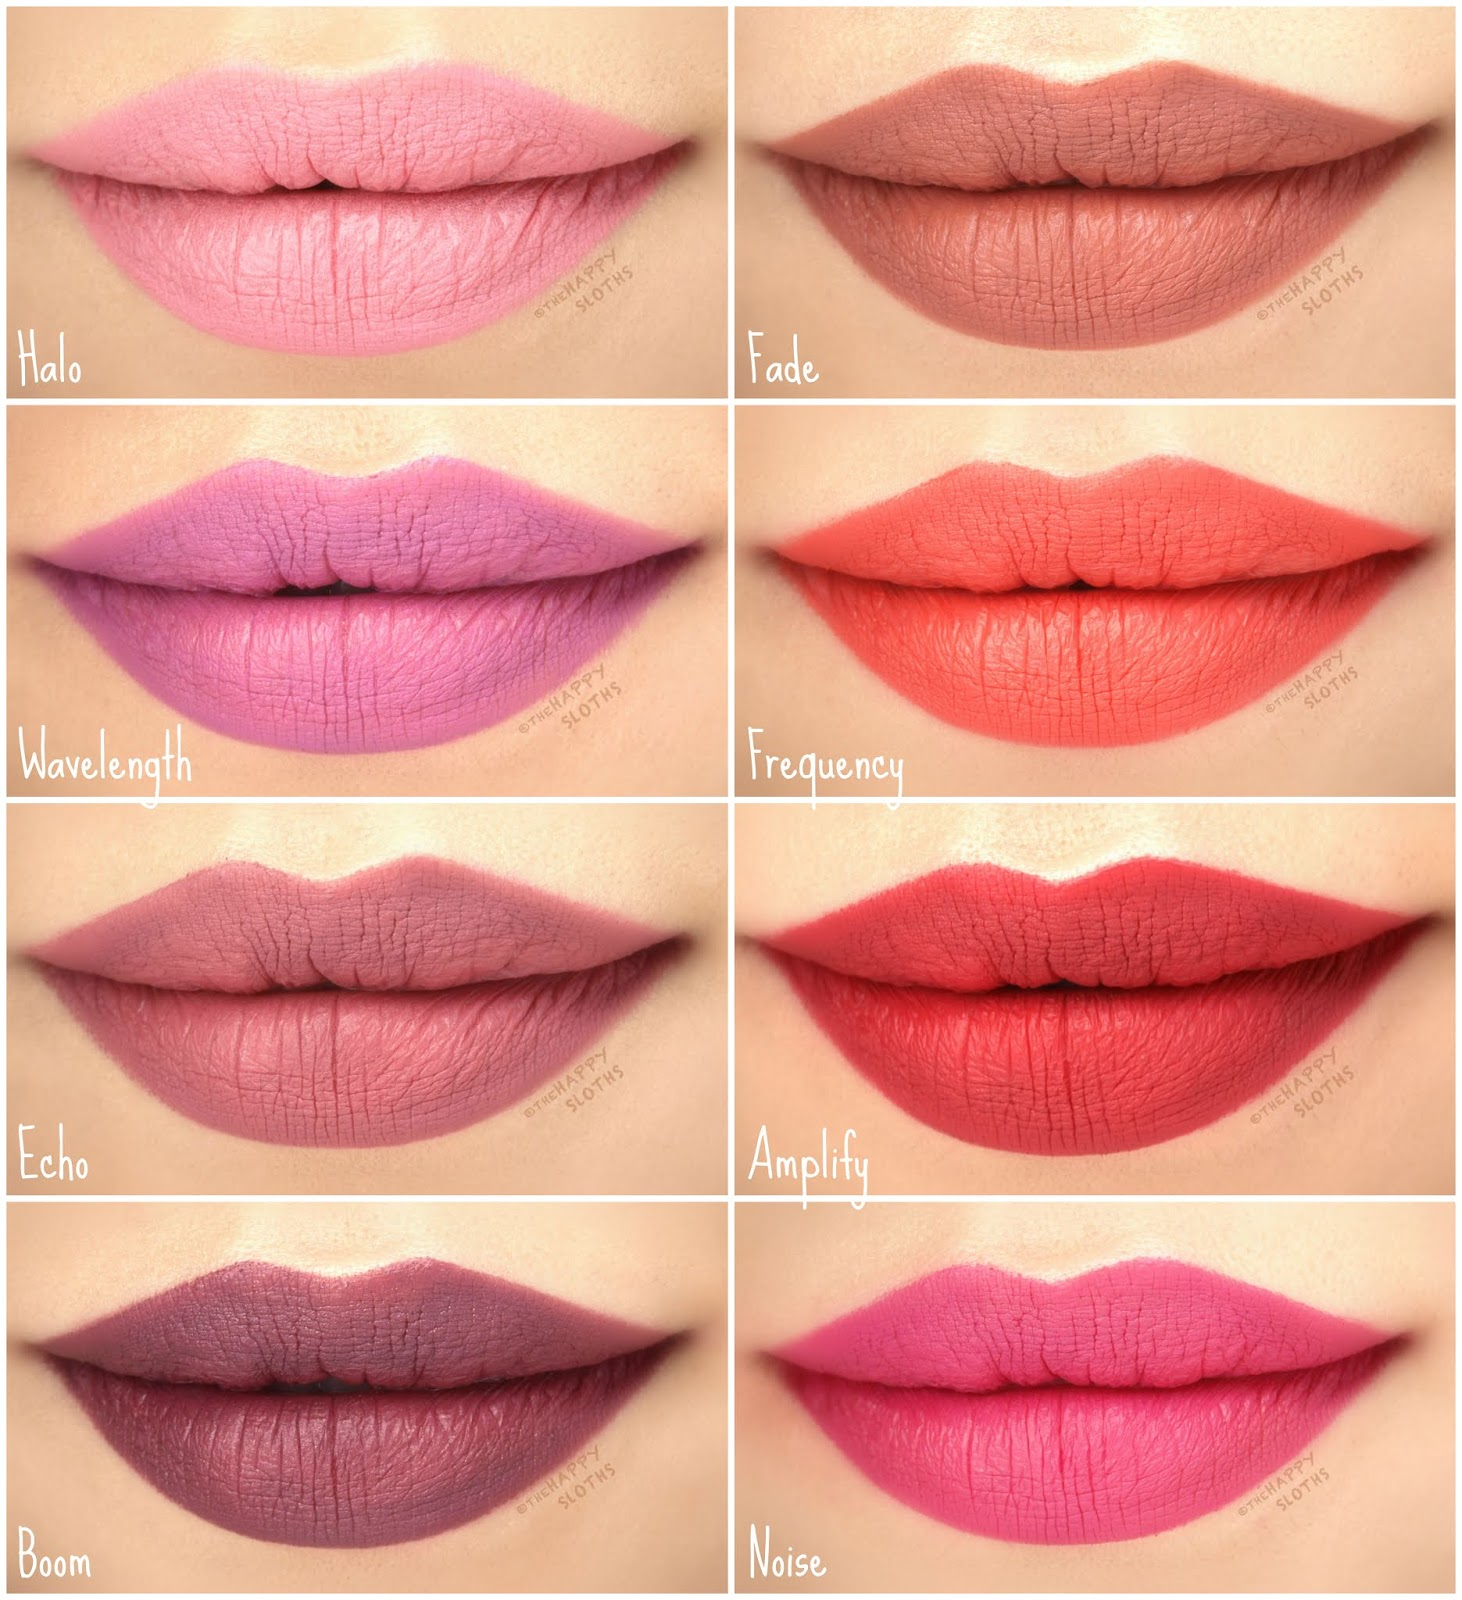 Urban Decay | Lo-Fi Lip Mousse: Review and Swatches